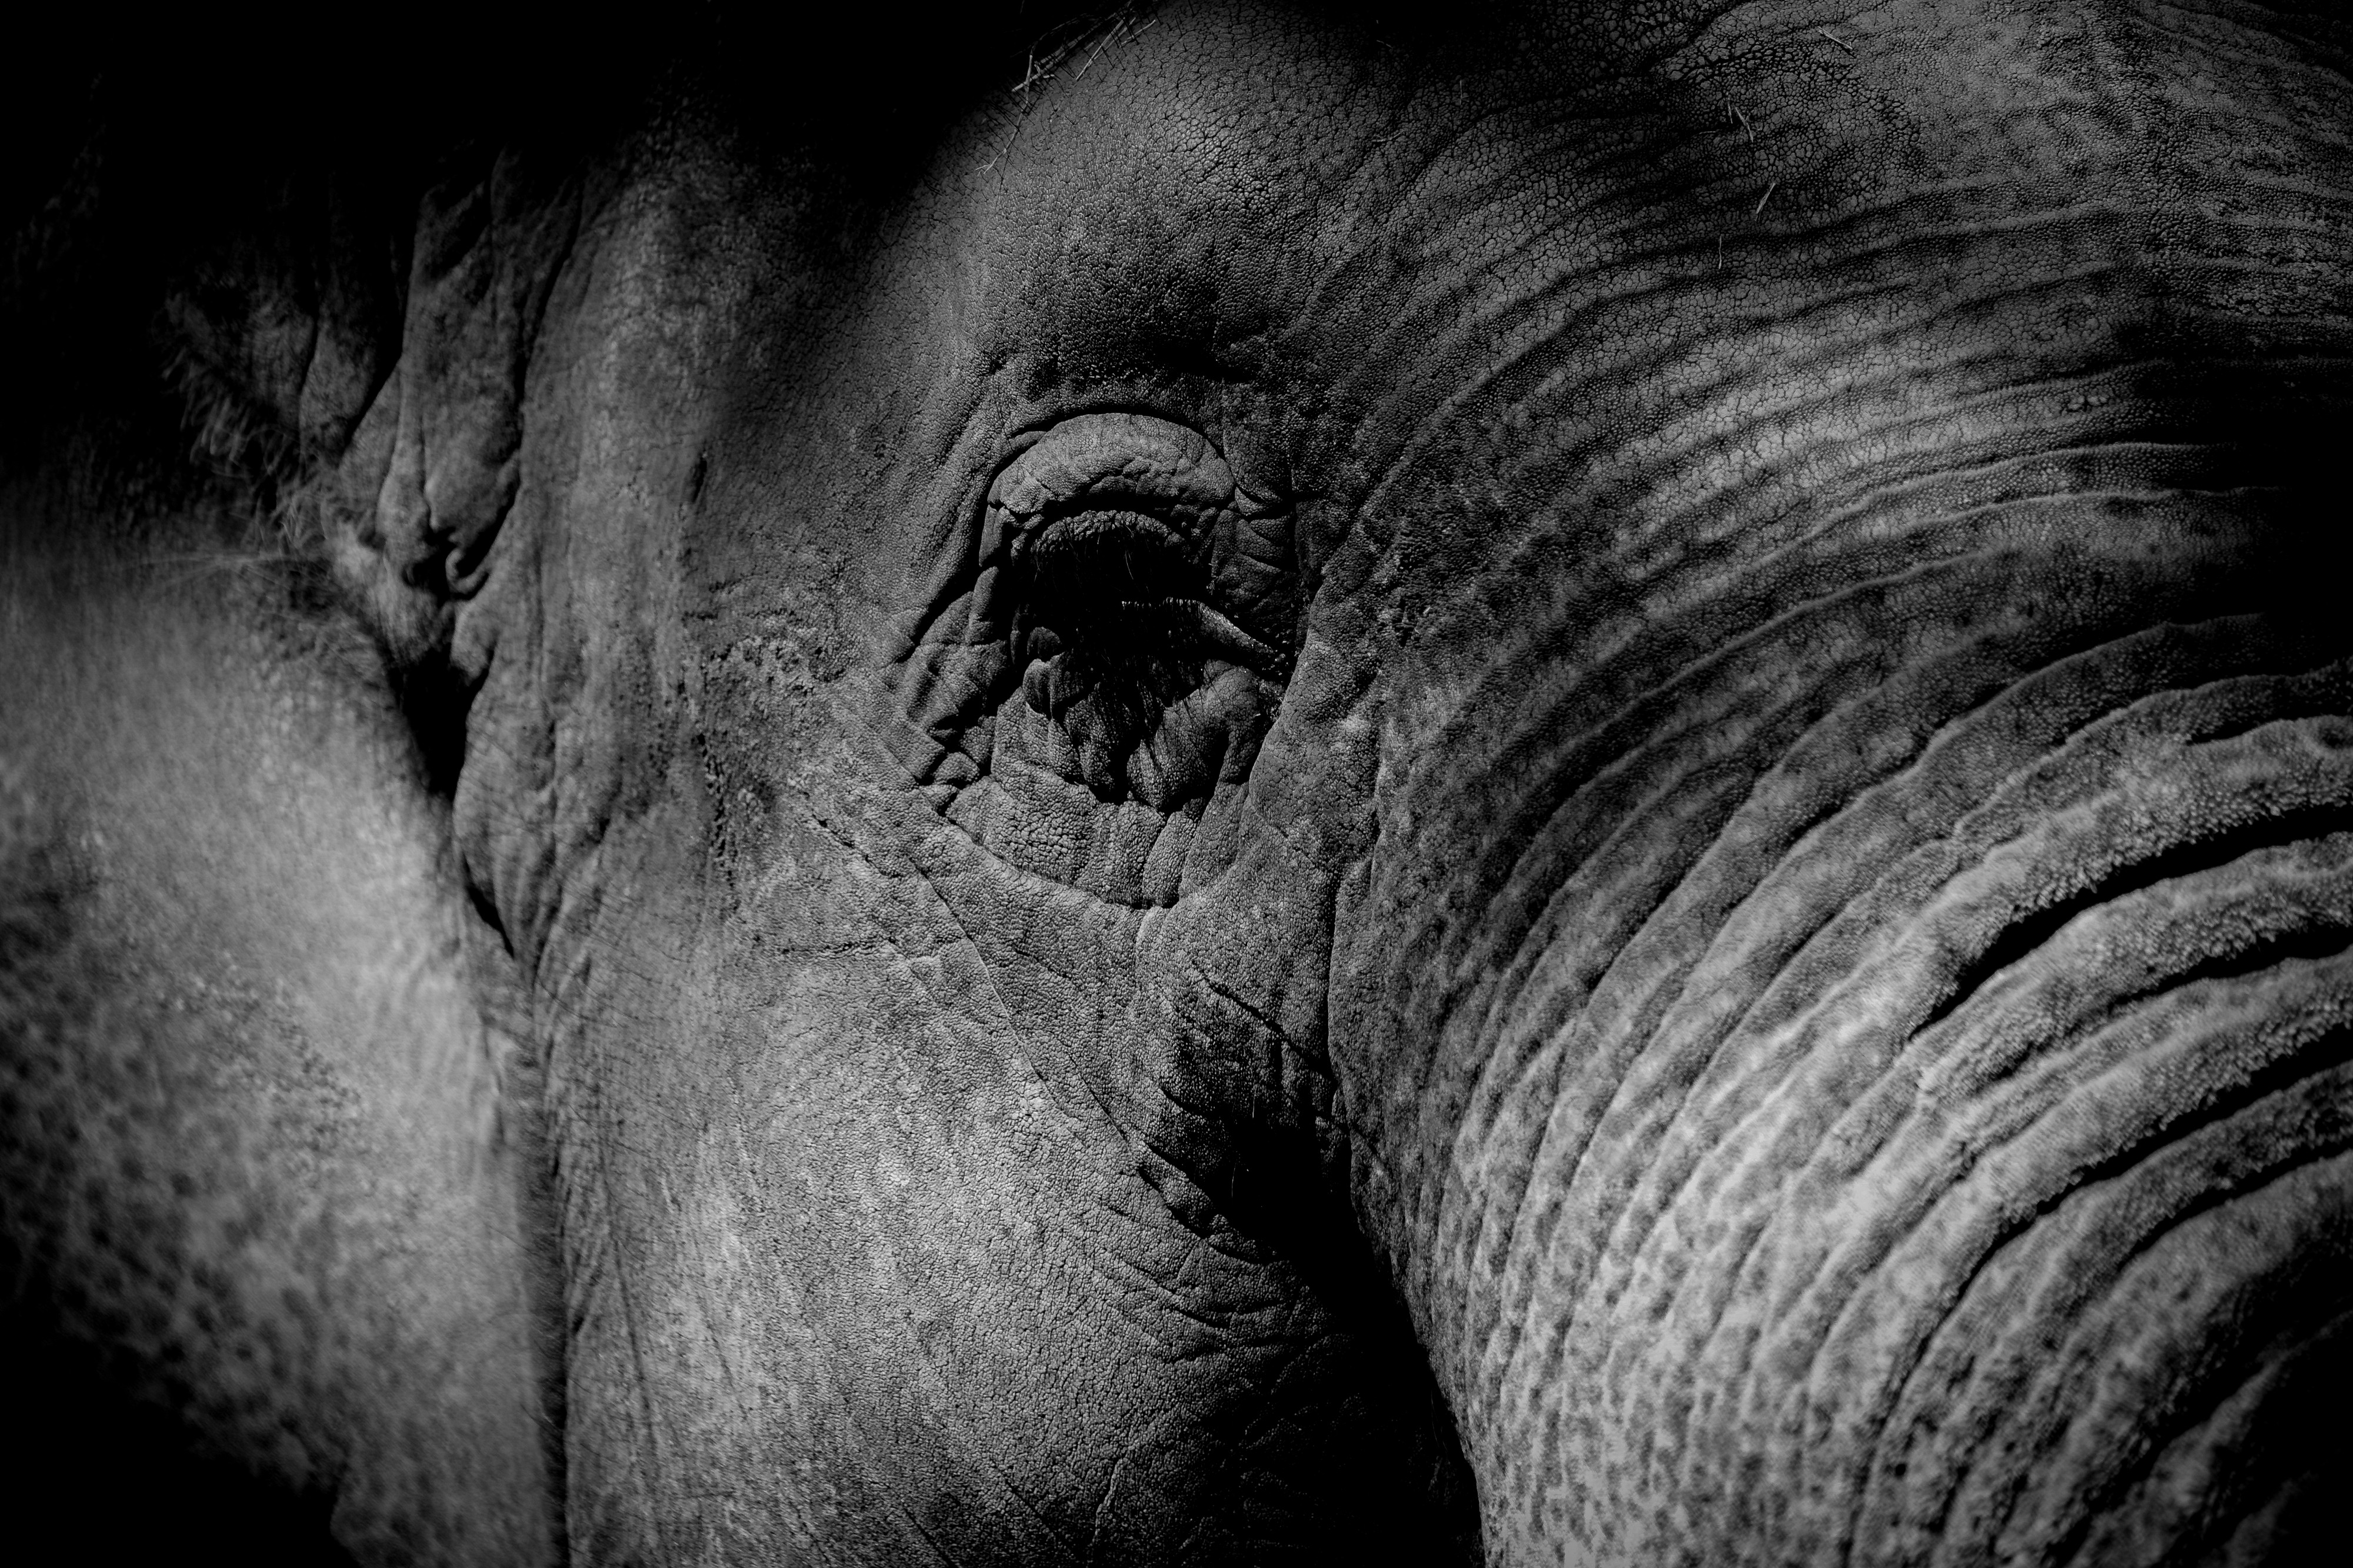 Black-and-white photograph closeup of an elephant's face.